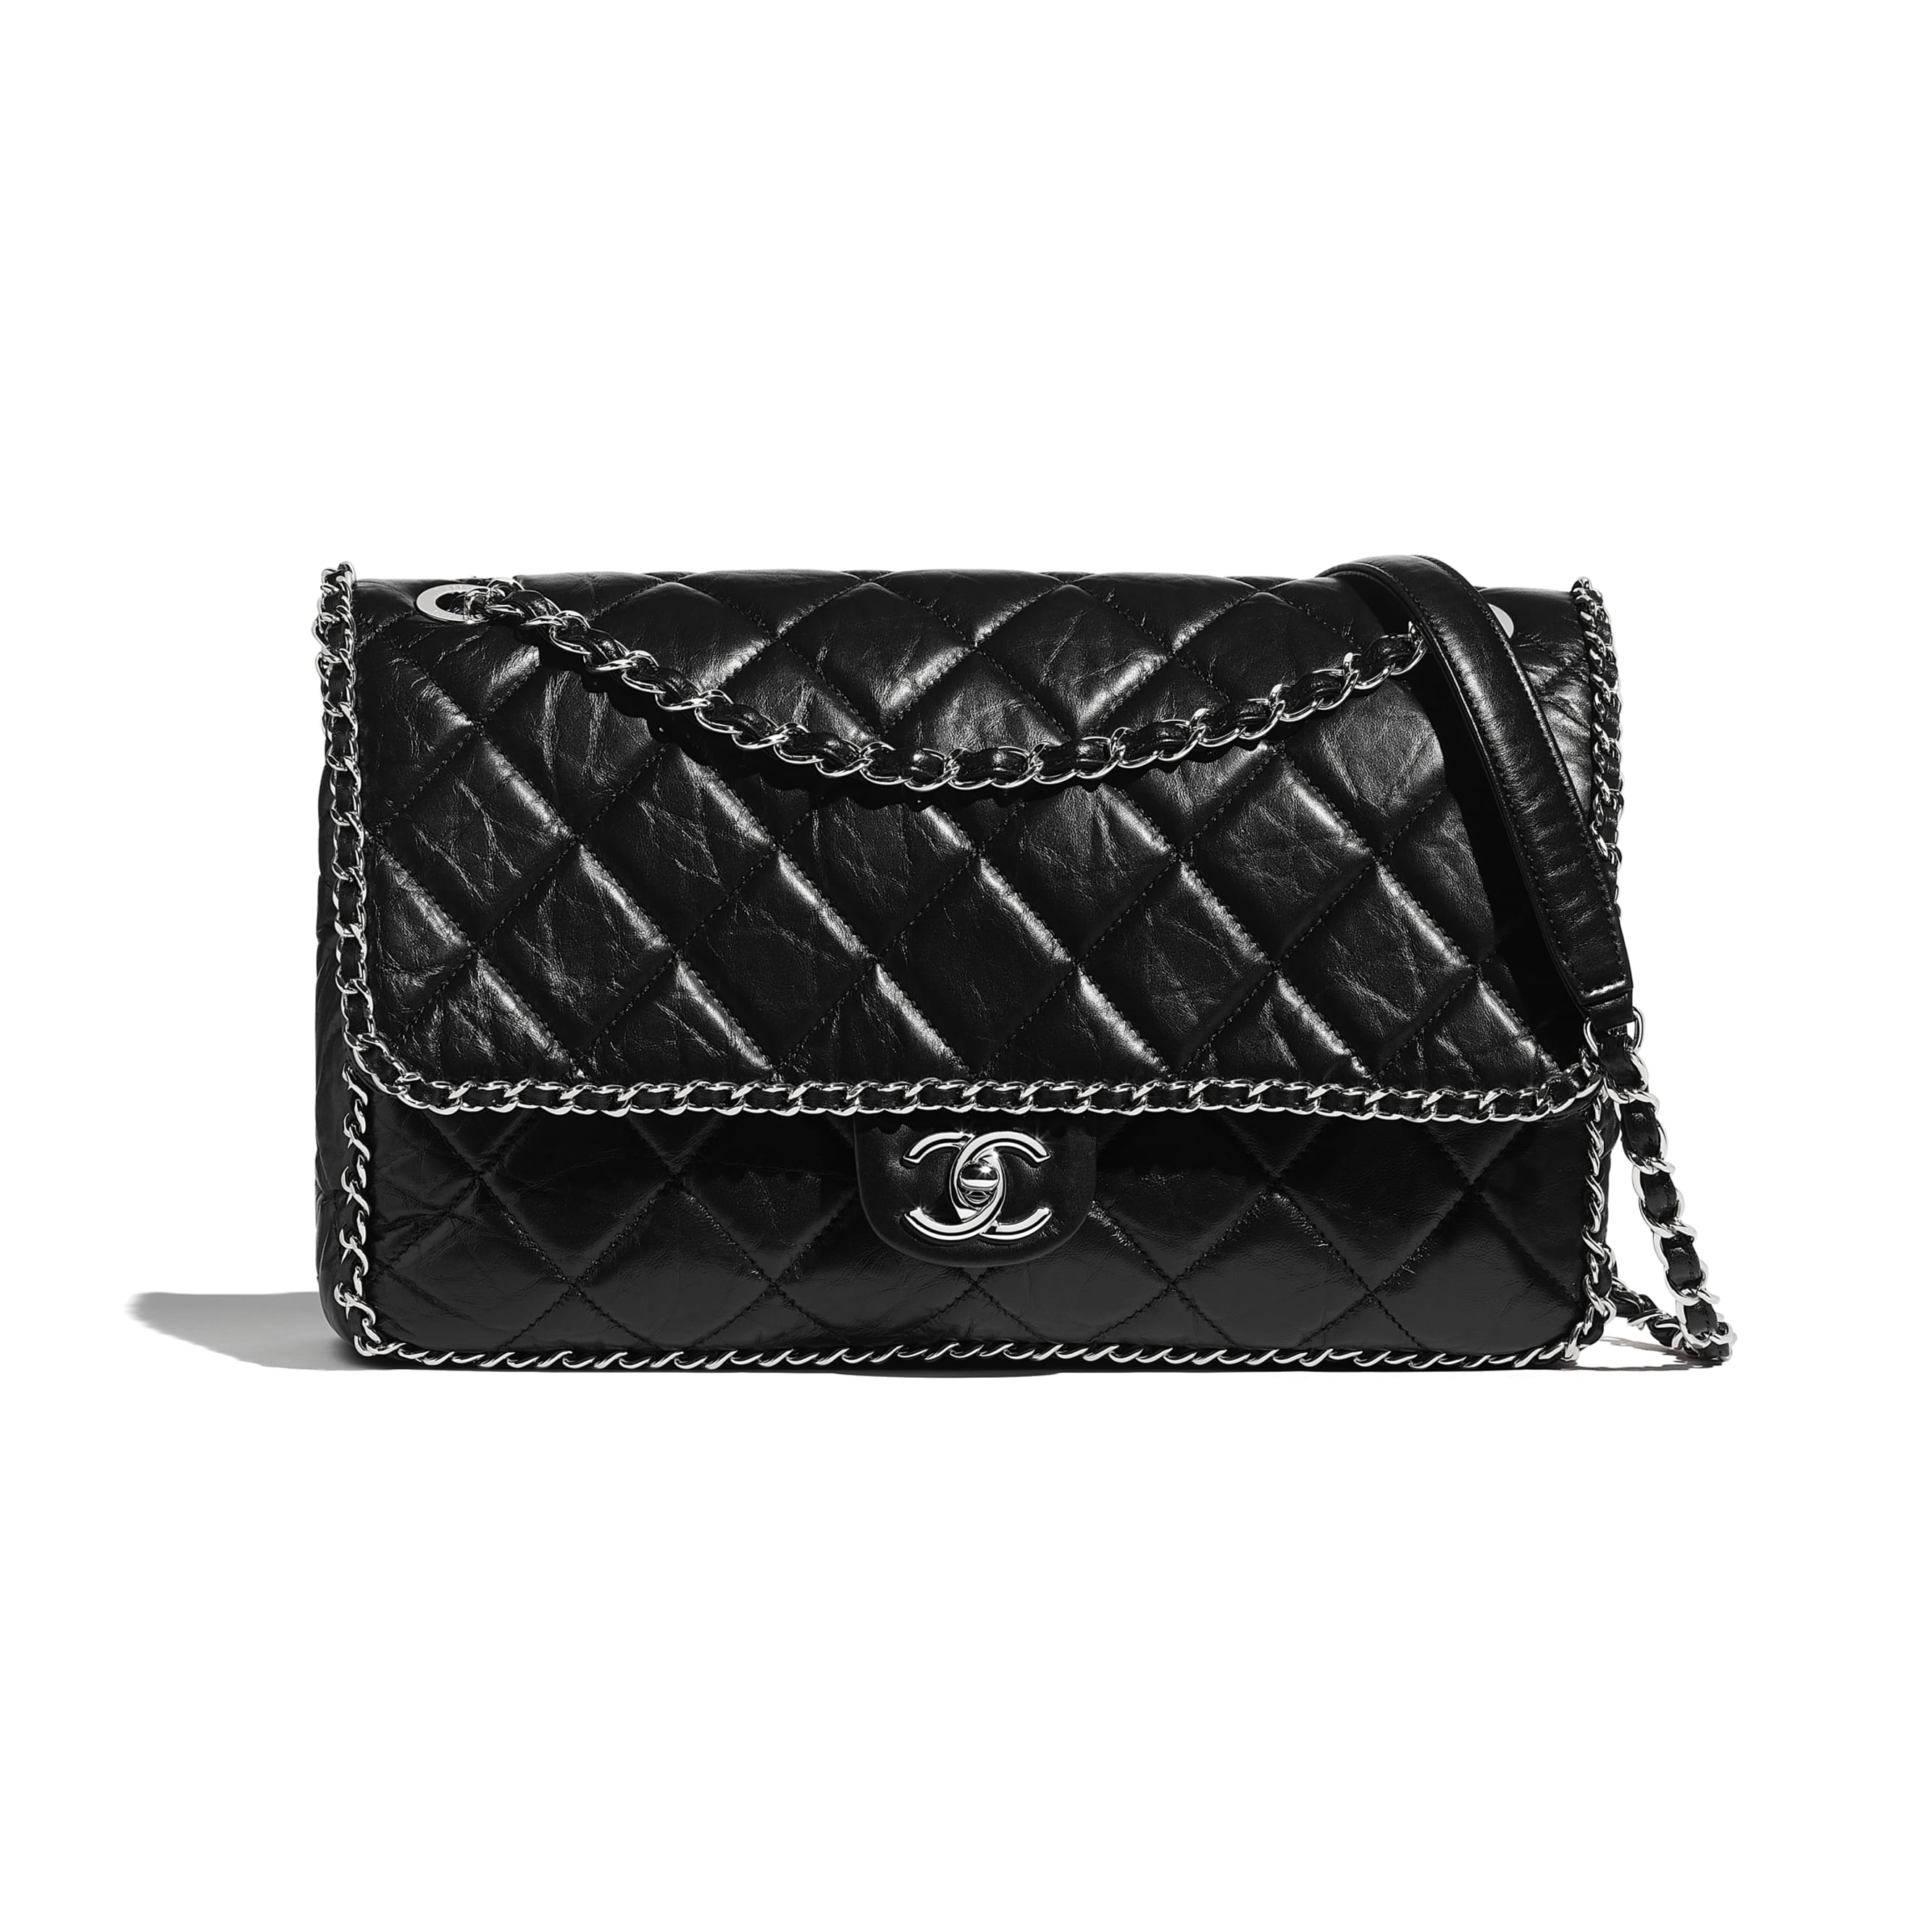 Large Flap Bag - Black - Aged Calfskin & Silver-Tone Metal - CHANEL - Default view - see standard sized version